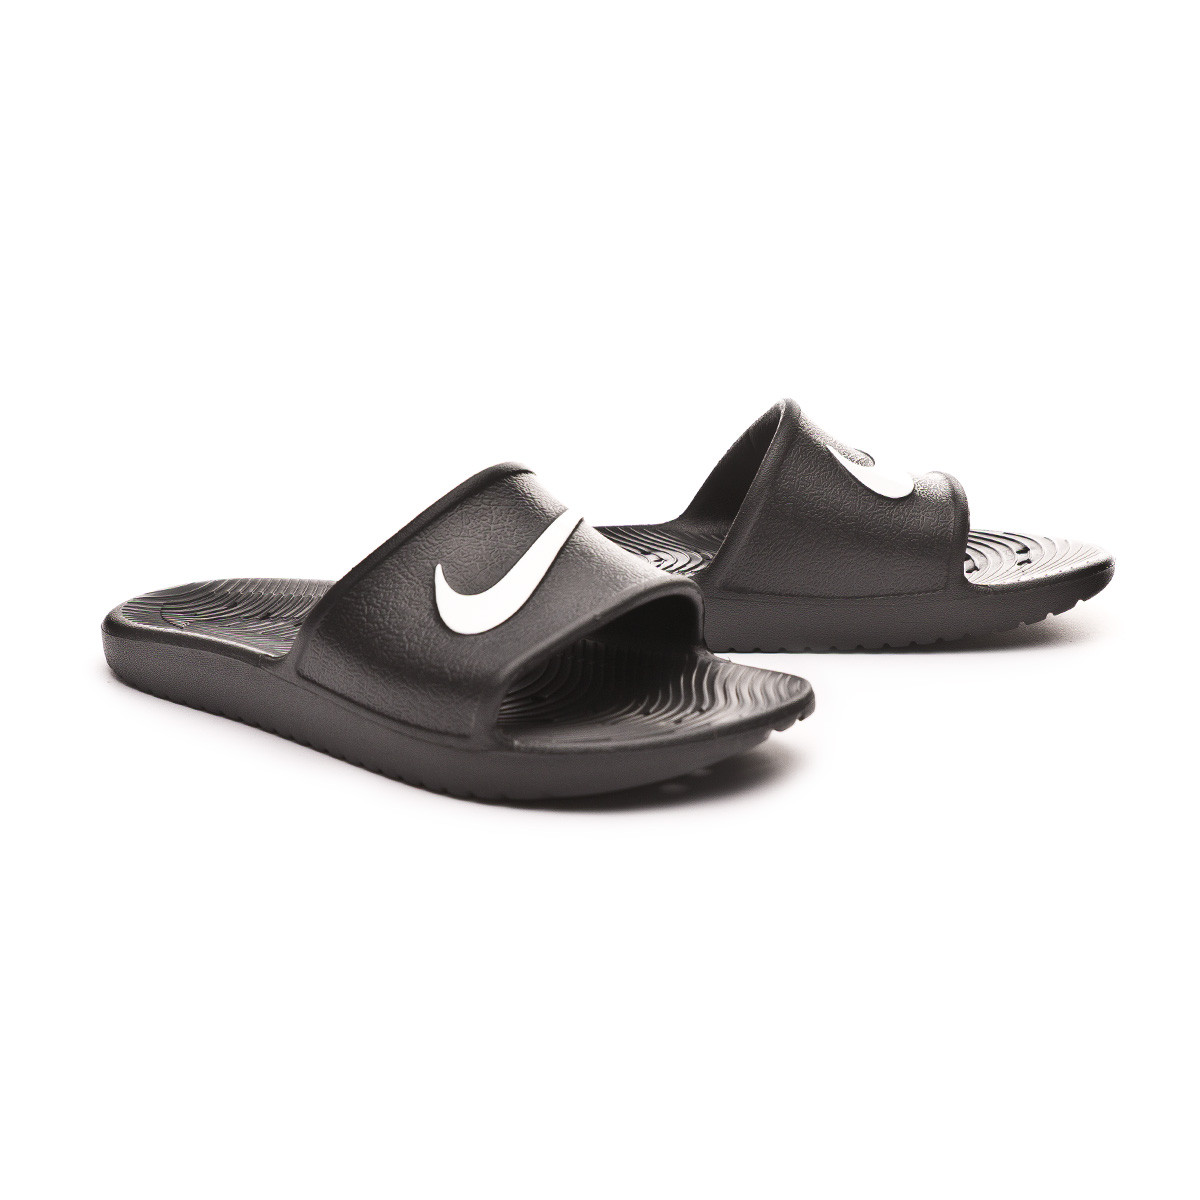 490e221c3 Flip-flops Nike Kawa Shower Black-White - Football store Fútbol Emotion